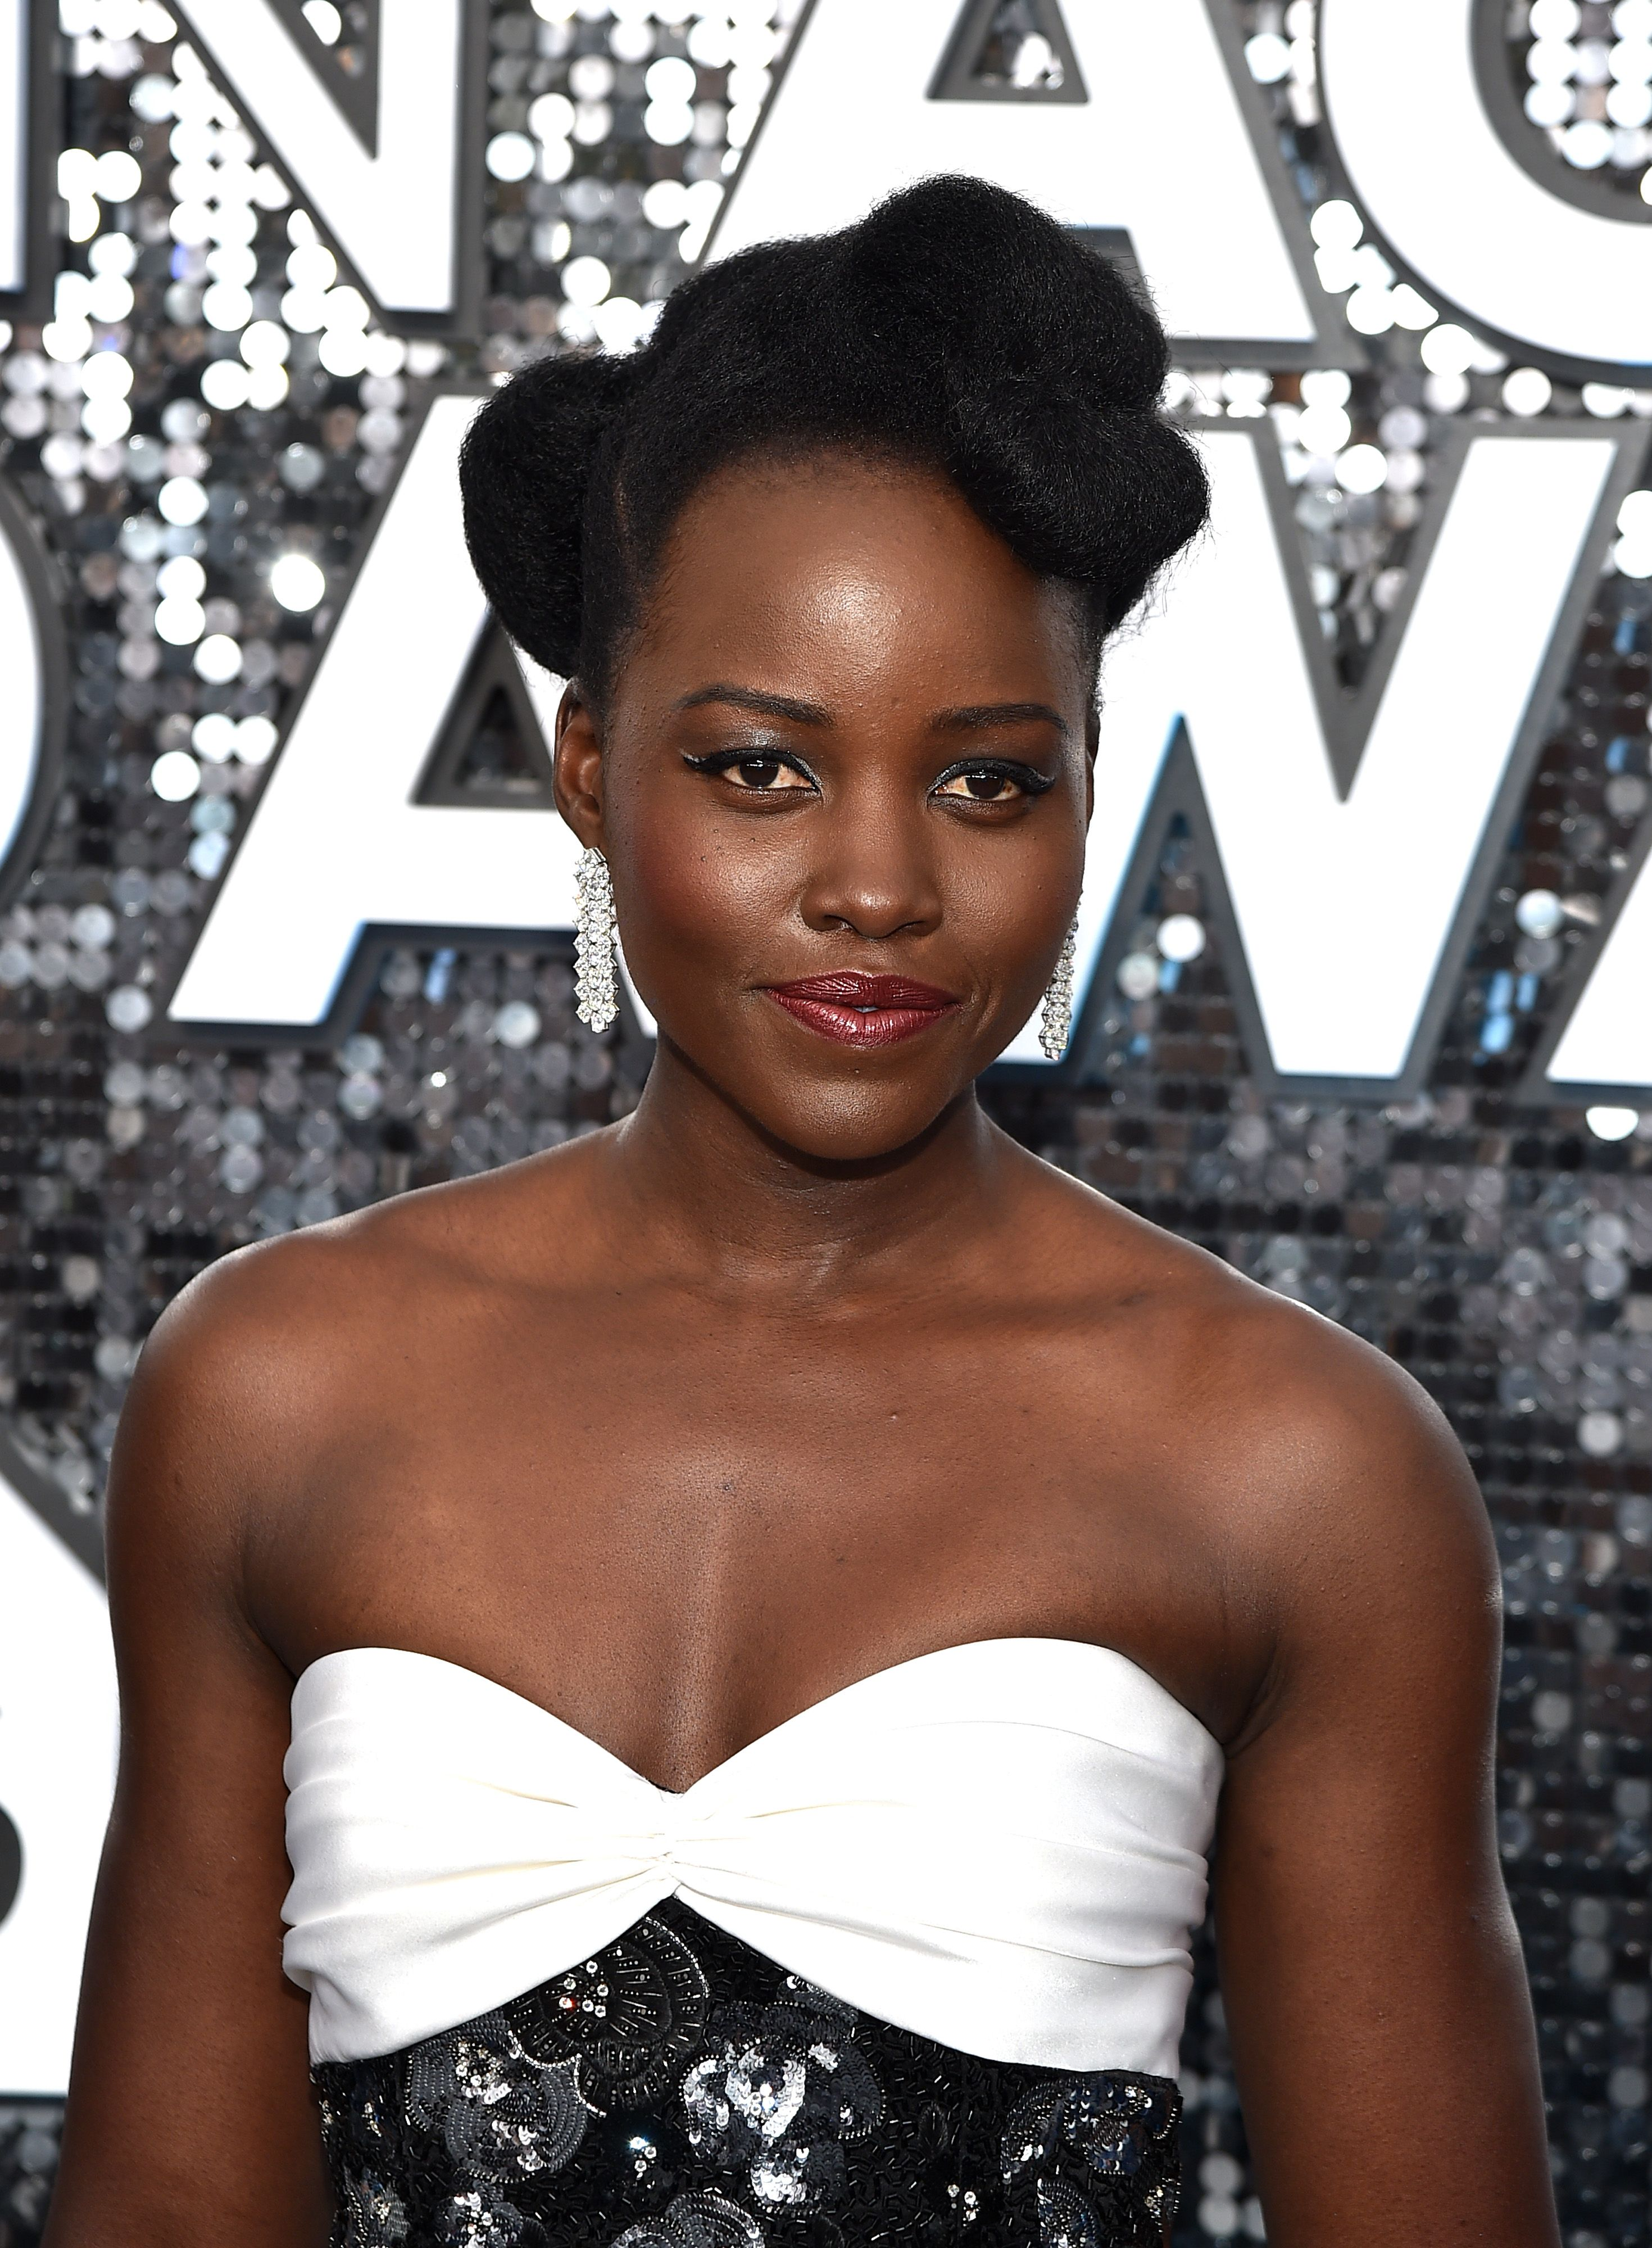 Lupita Nyong'o at the Annual Screen Actors Guild Awards on January 19, 2020 in Los Angeles. | Photo: Getty Images